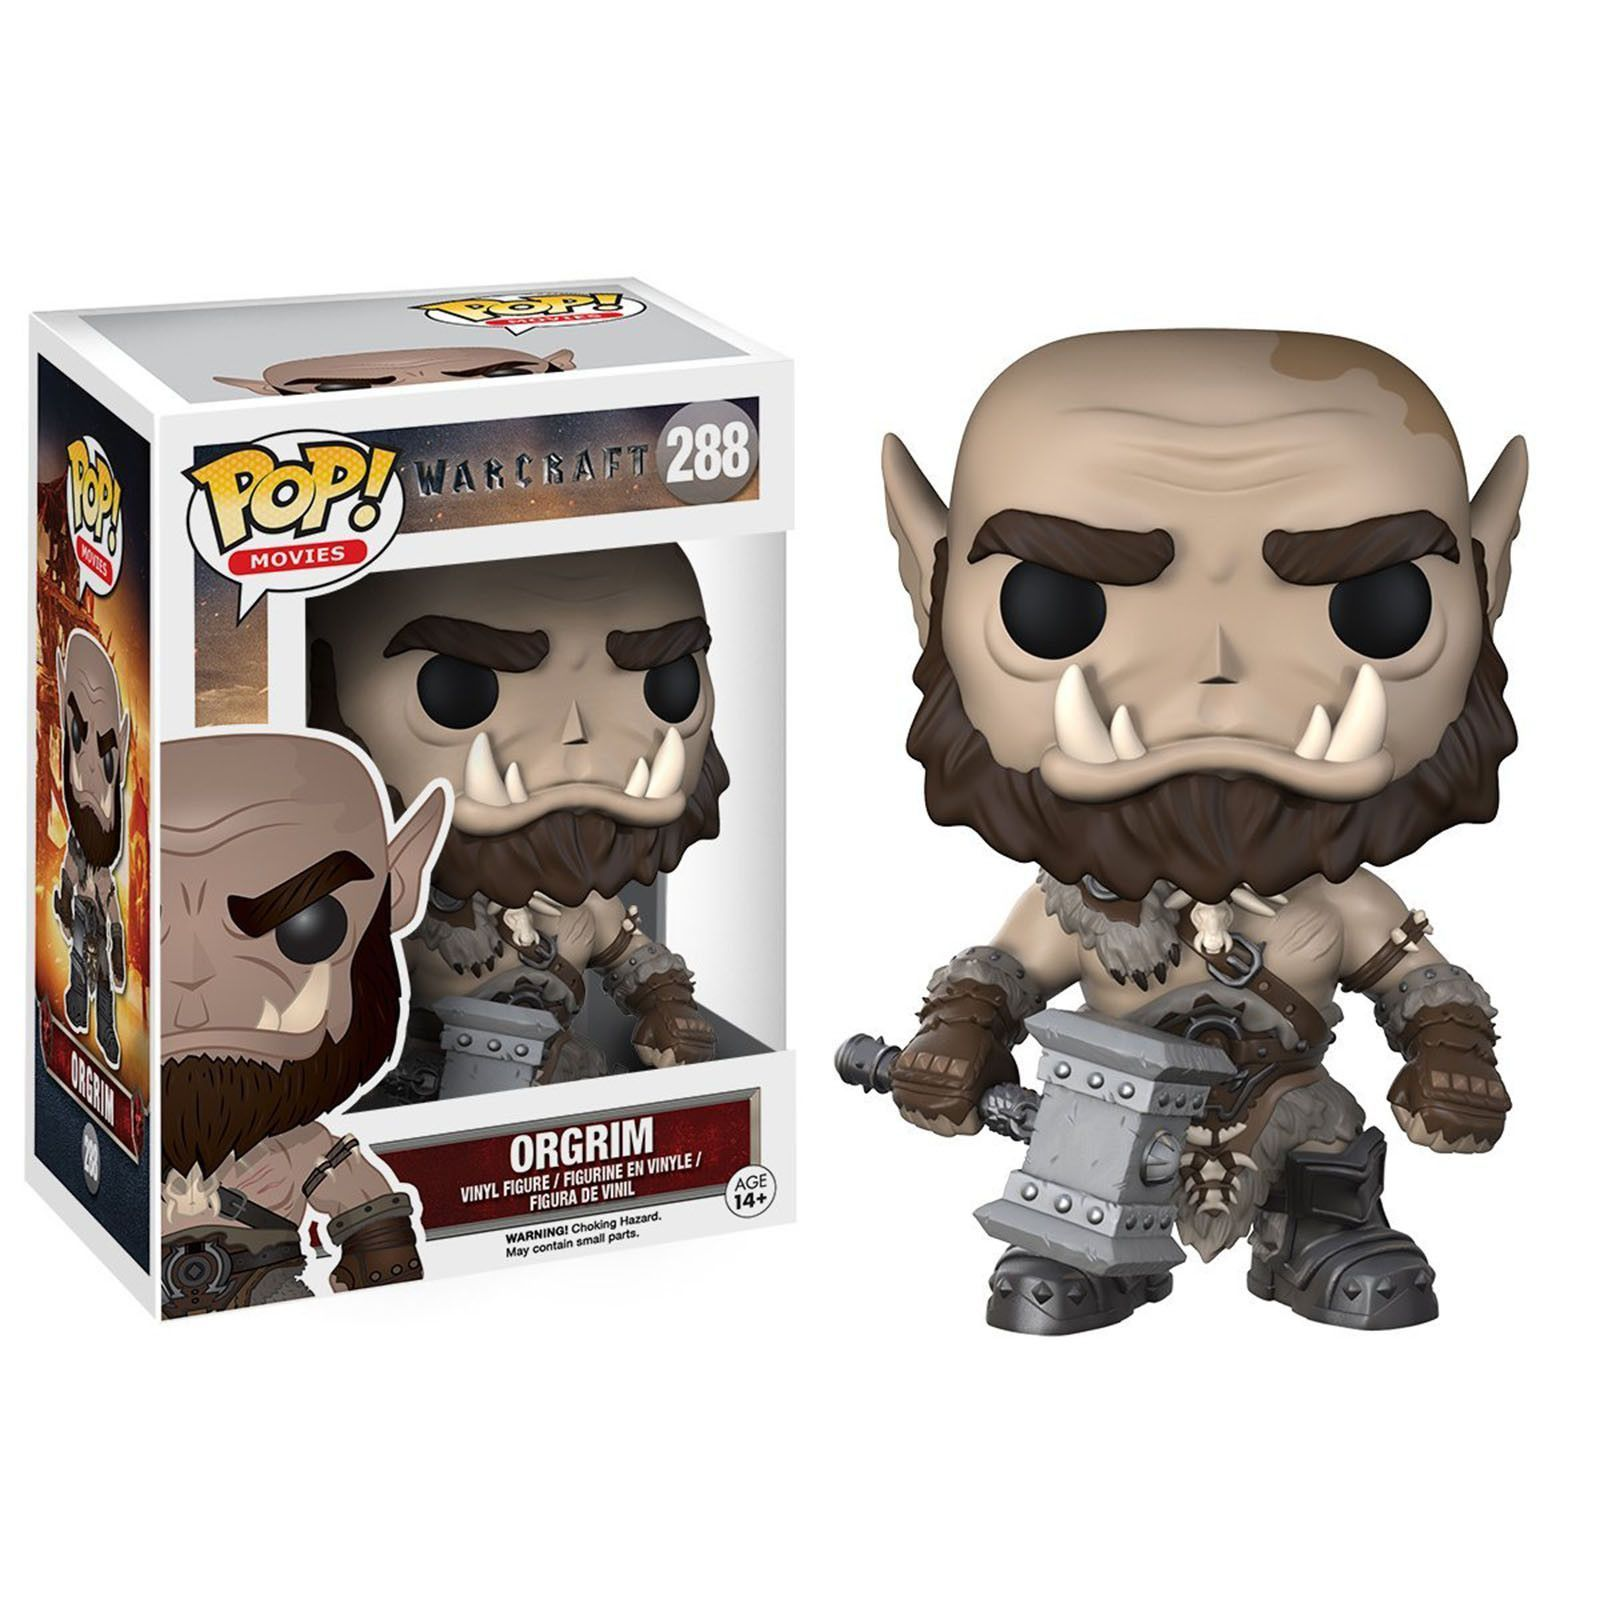 Funko World Of Warcraft Pop Orgrim Vinyl Figure Funko